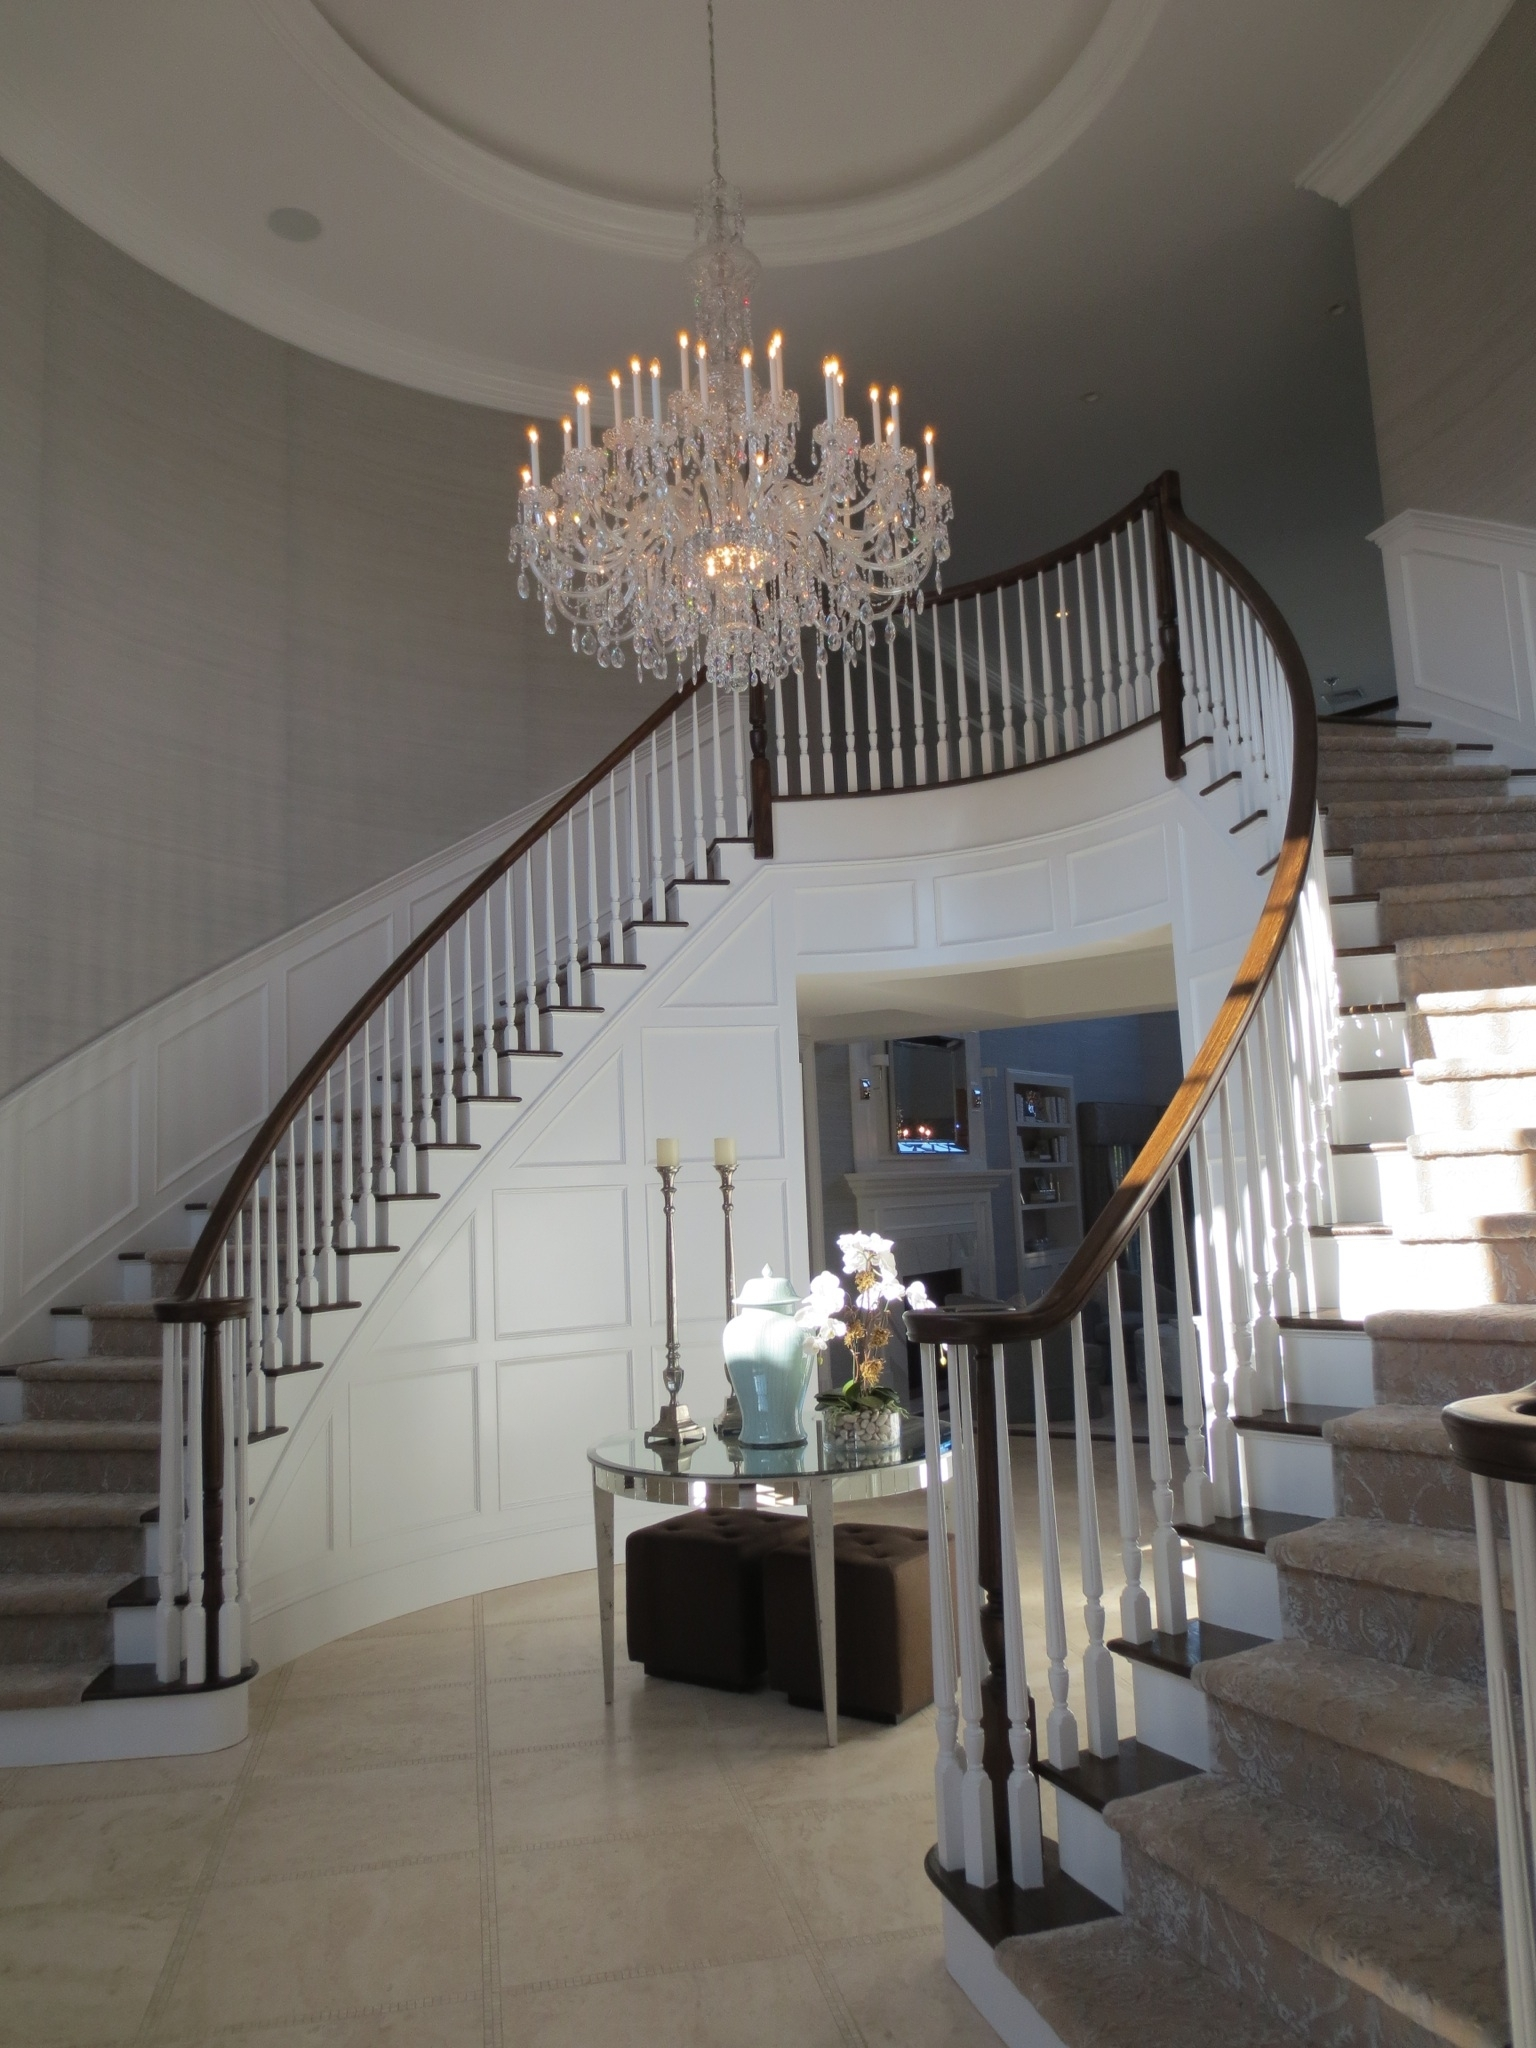 Home Design Modern Chandeliers For Staircase Style Medium Modern Intended For Staircase Chandeliers (Image 7 of 15)